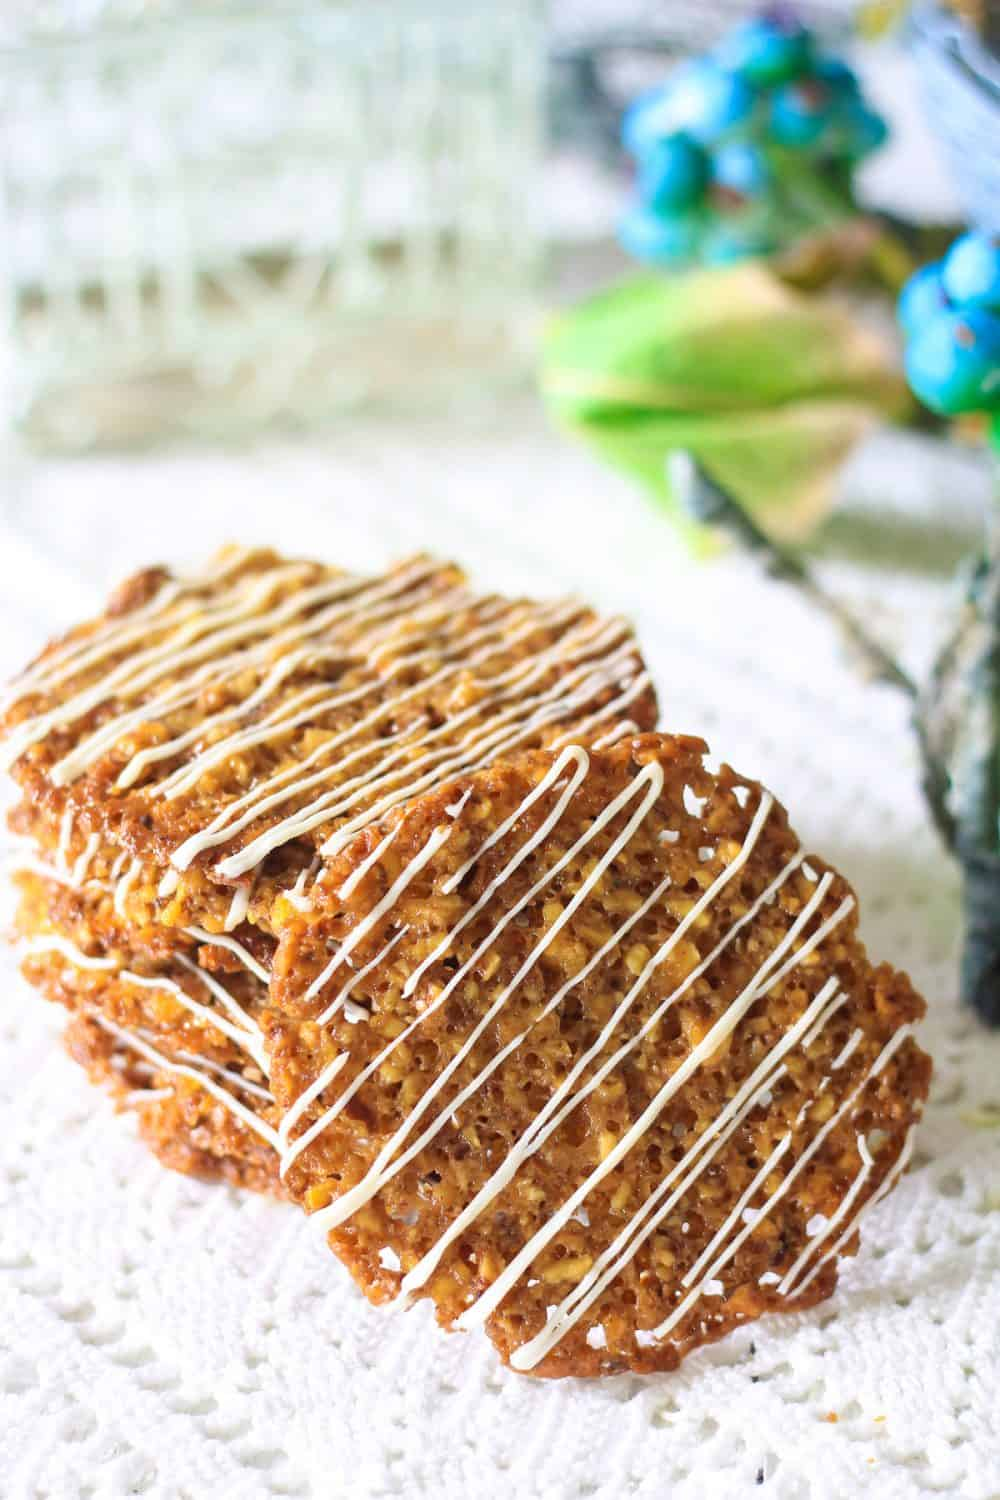 Photograph of a stack of florentine cookies with white chocolate drizzle laying on a lace tablecloth